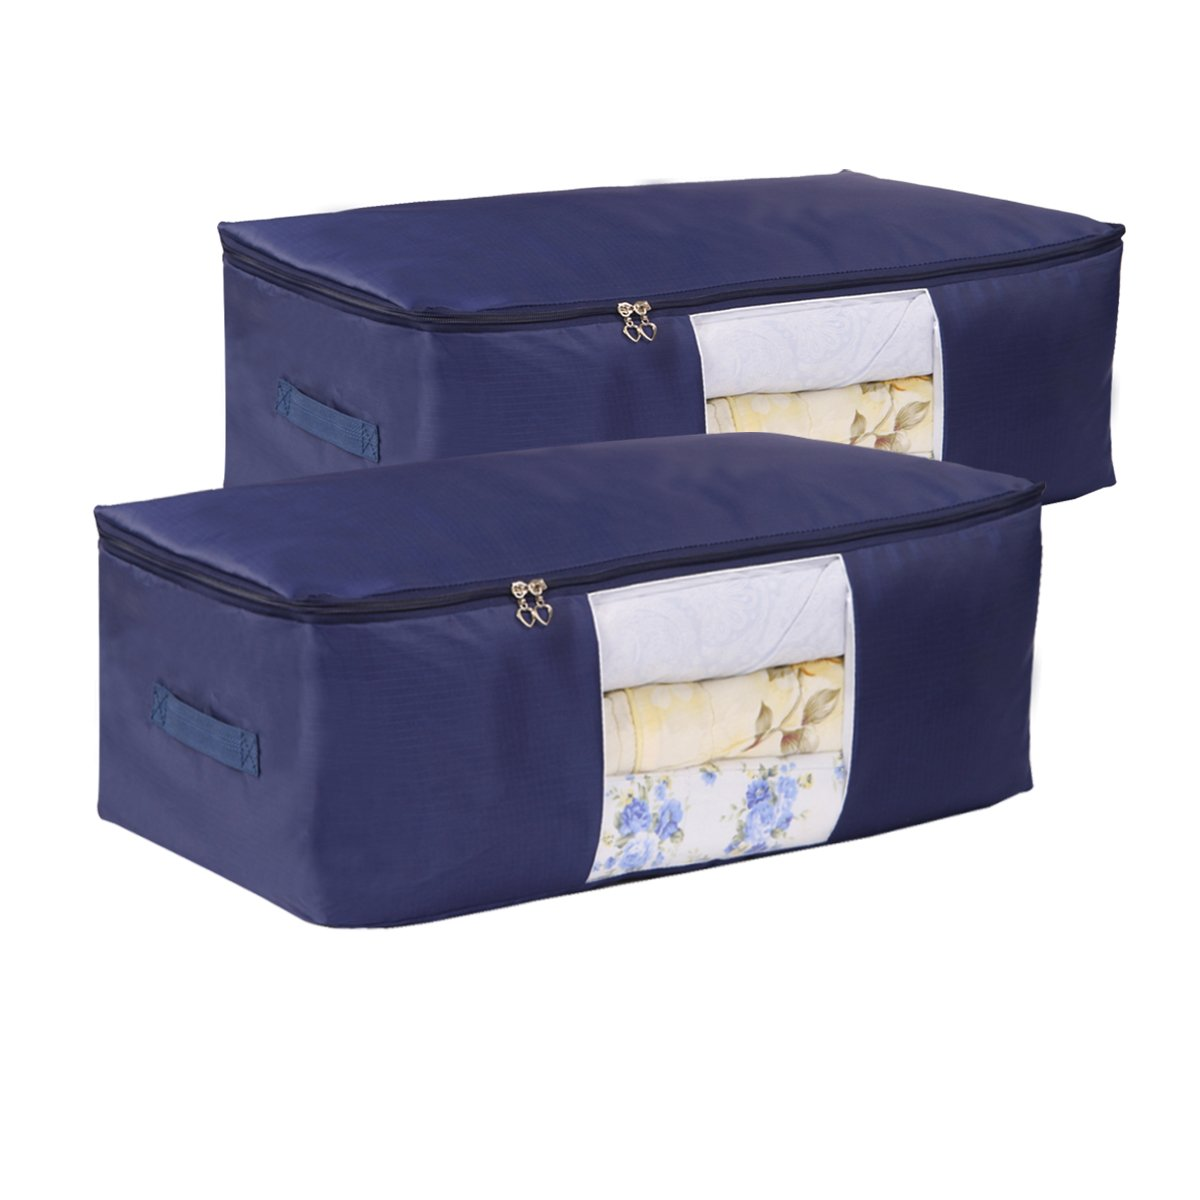 VEAMOR Comforter Storage Bags Pack of